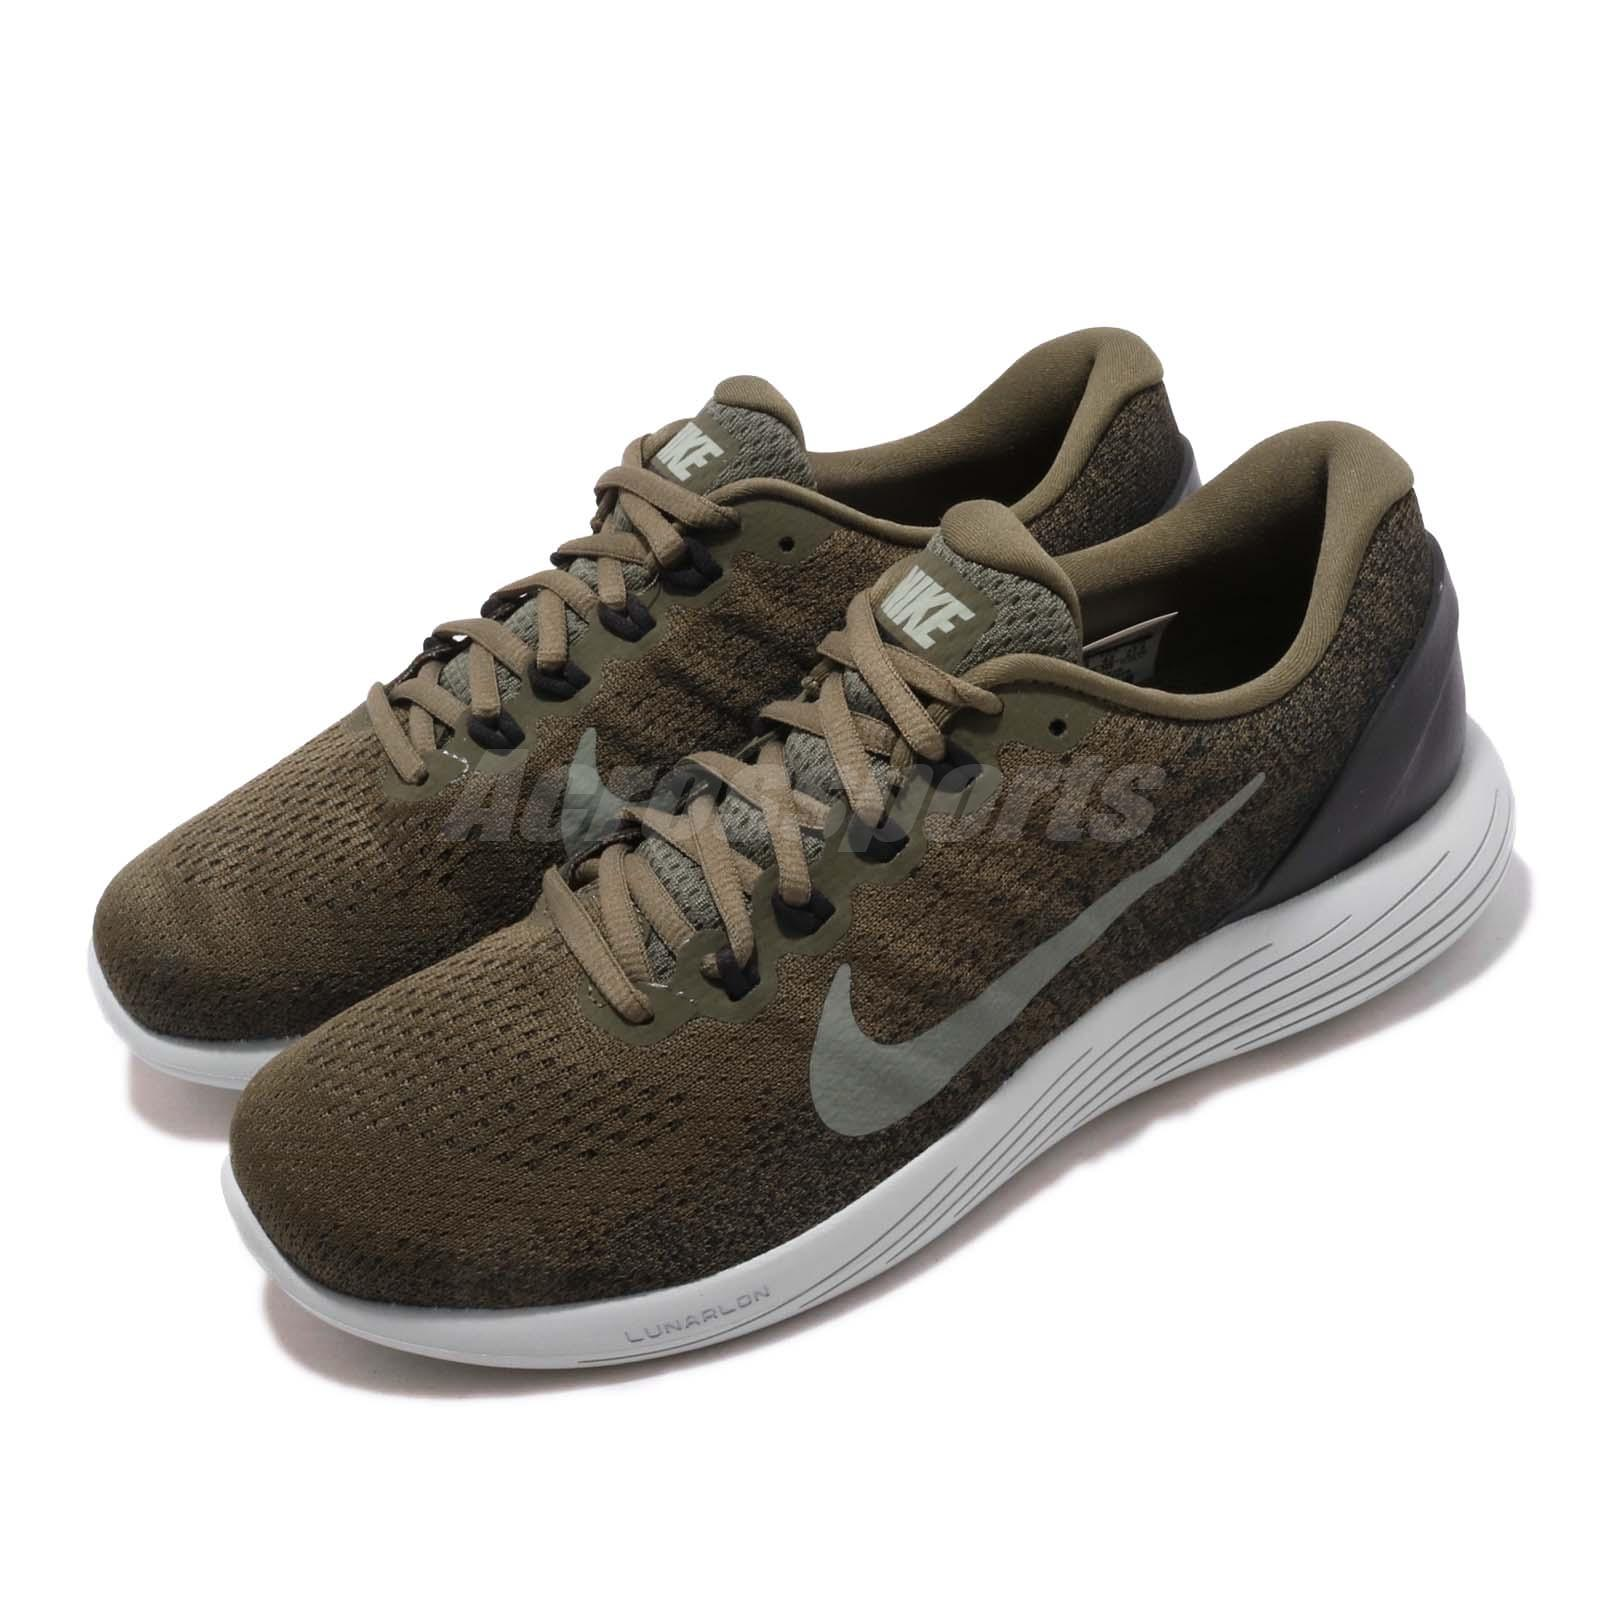 8e0f4eb9b4 Details about Nike Lunarglide 9 IX Olive Green Black Men Running Shoes  Sneakers 904715-200